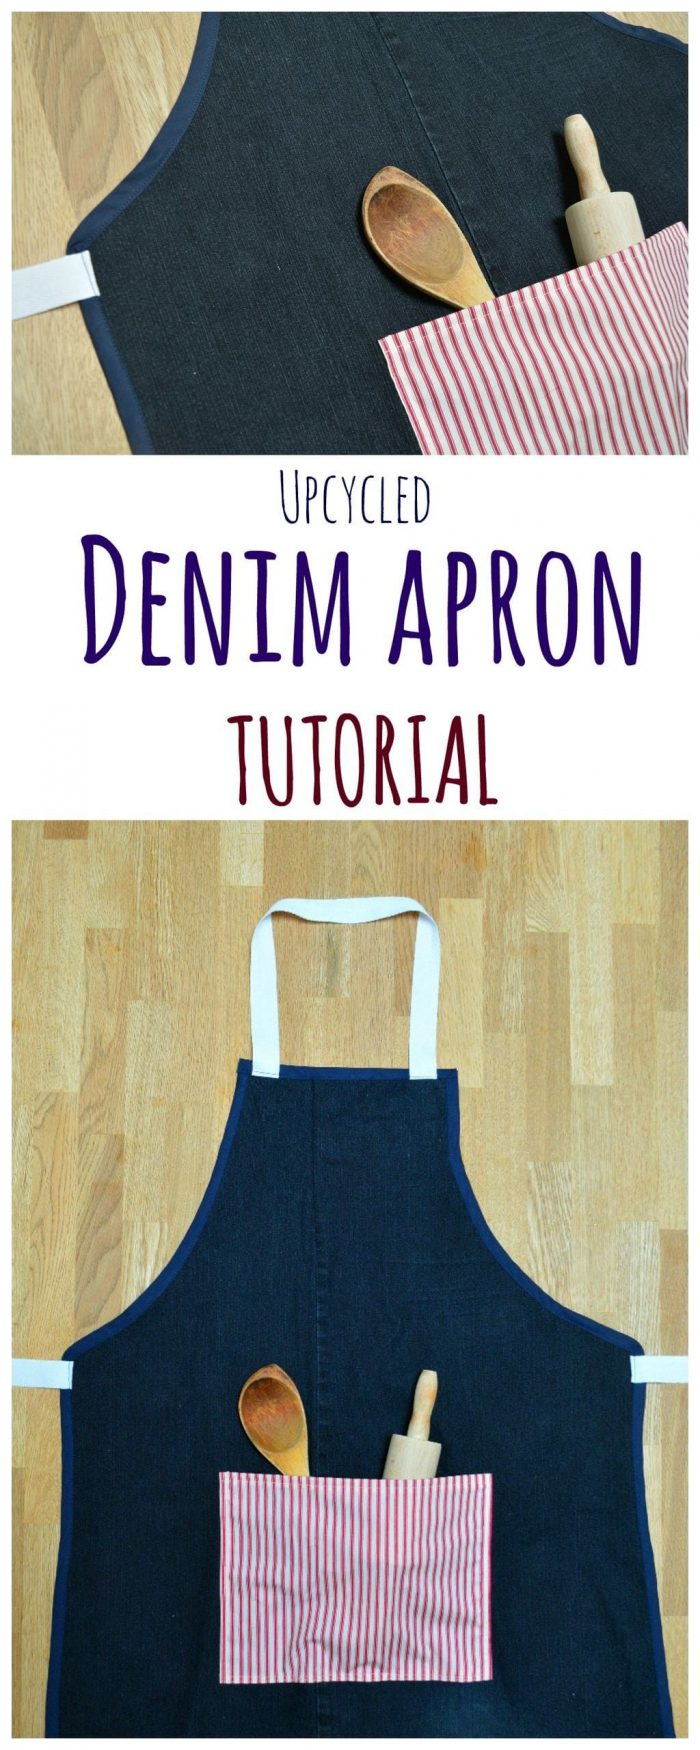 Upcycled Denim Apron – DIY Gift